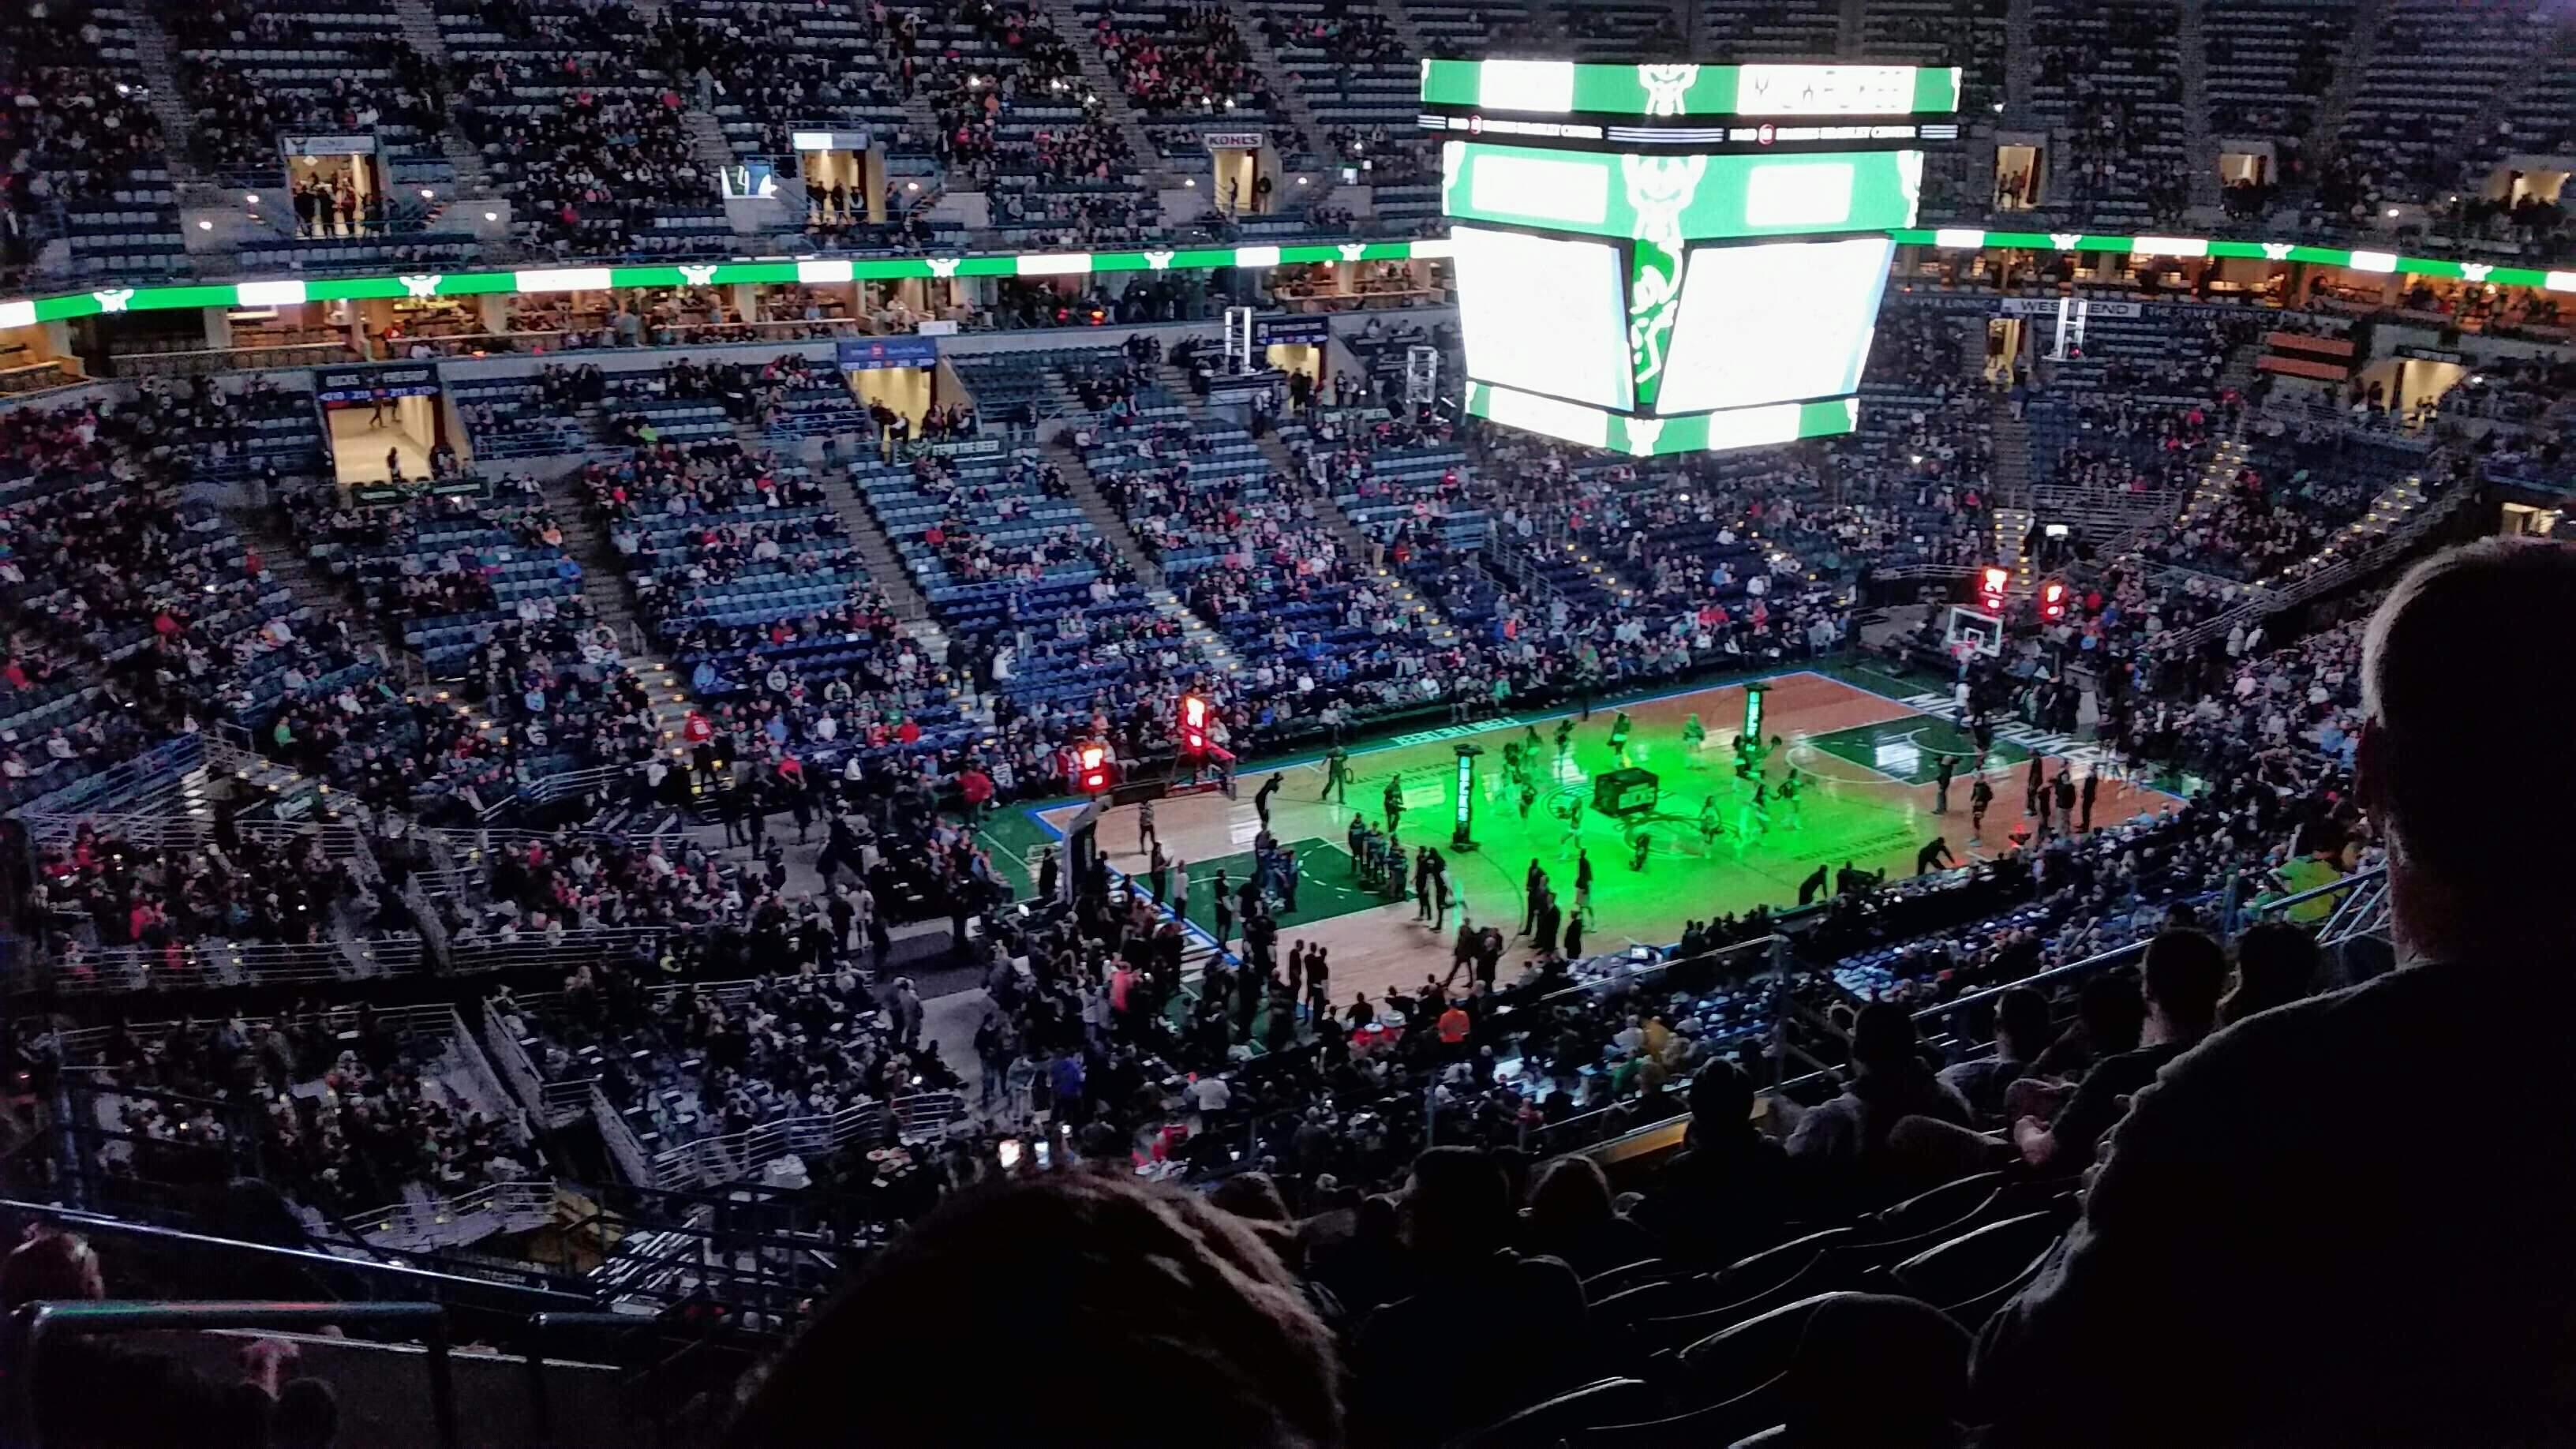 BMO Harris Bradley Center Section 404 Row P Seat 13